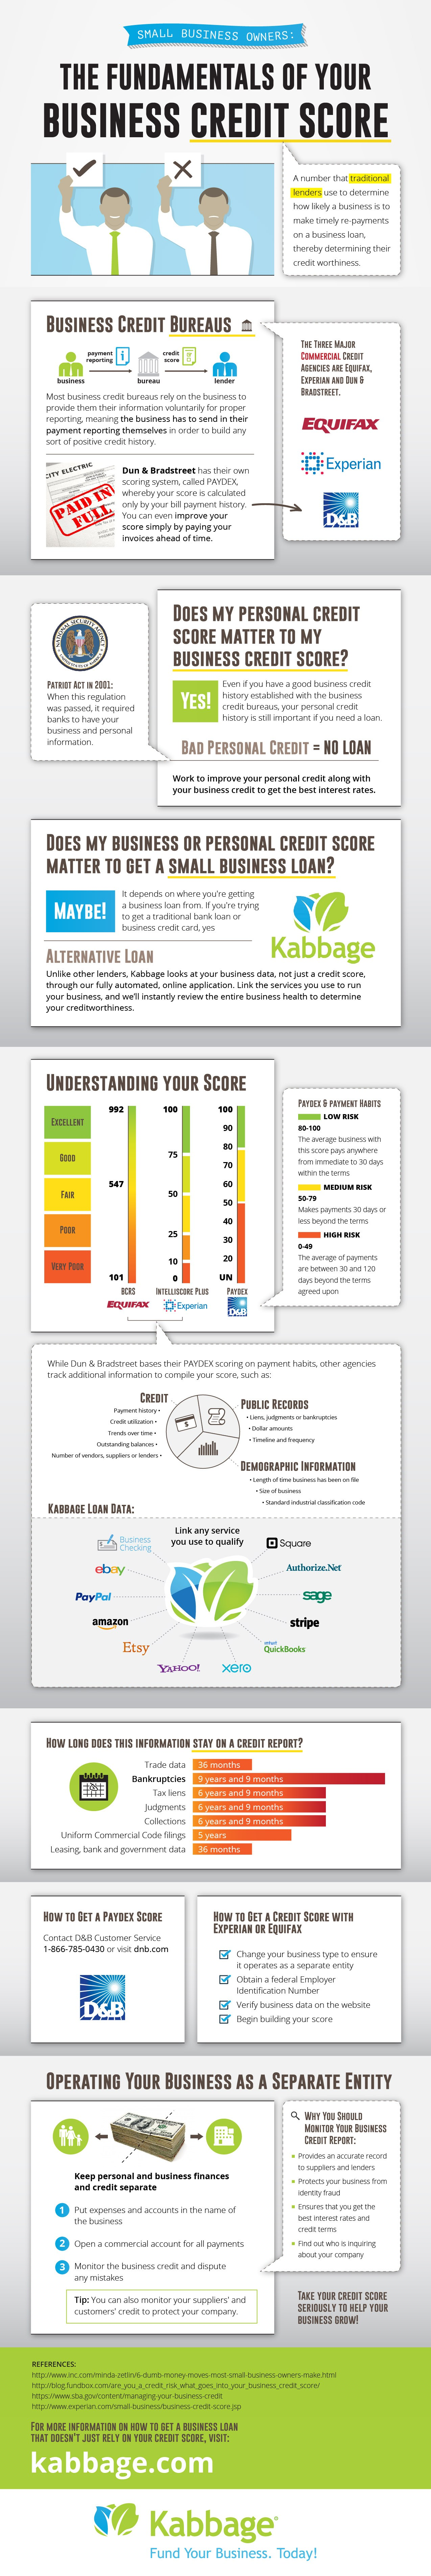 The Fundamentals of Your Business Credit Score